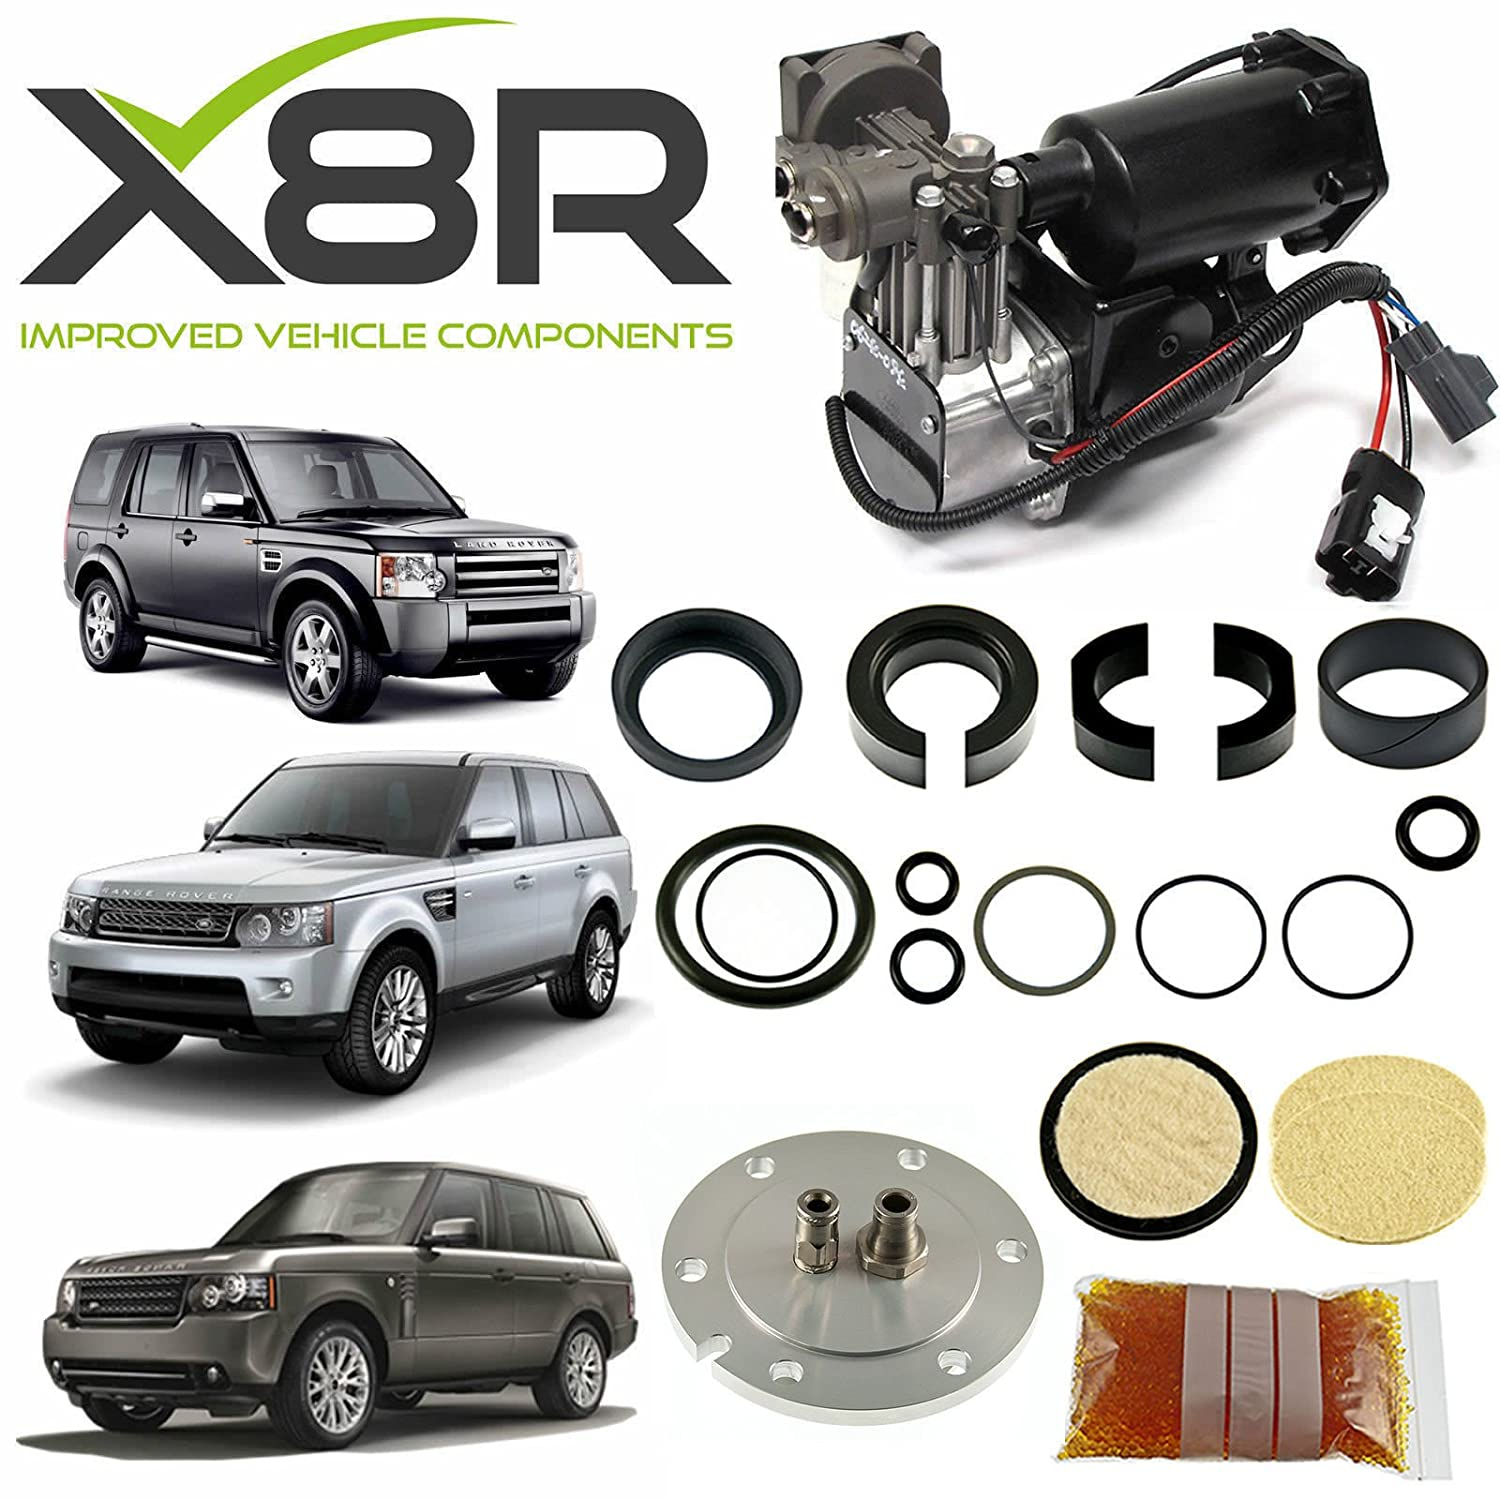 HITACHI AIR COMPRESSOR & FILTER DRYER REPAIR KIT FOR LAND ROVER LR3 DISCOVERY 3 X 8R44 X8R